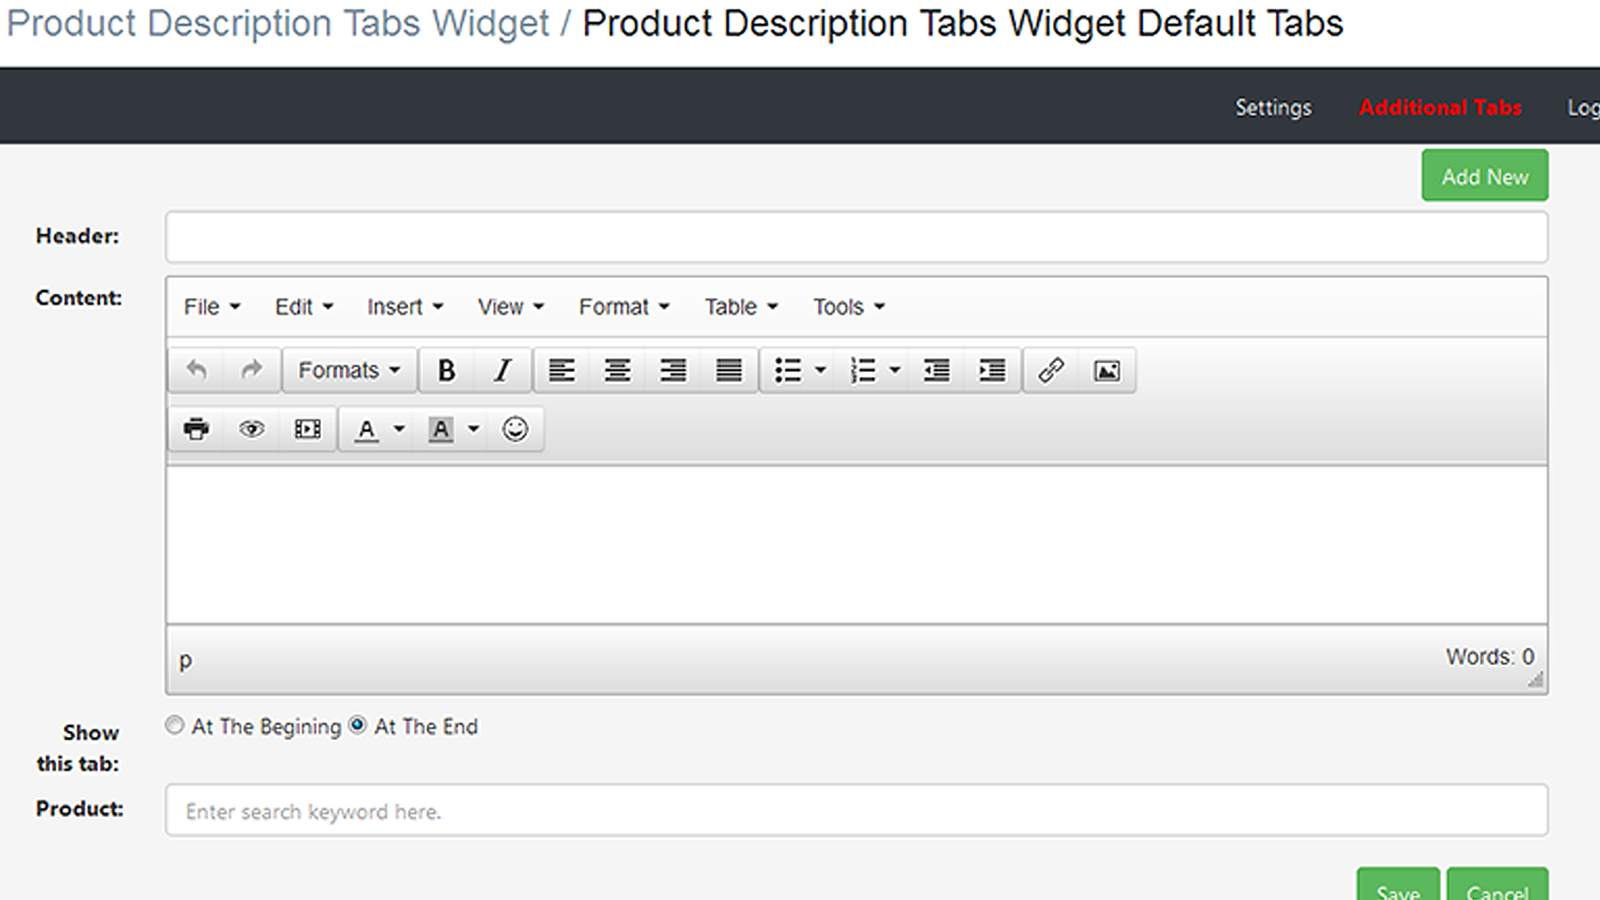 Additional tab entry page in the app backend